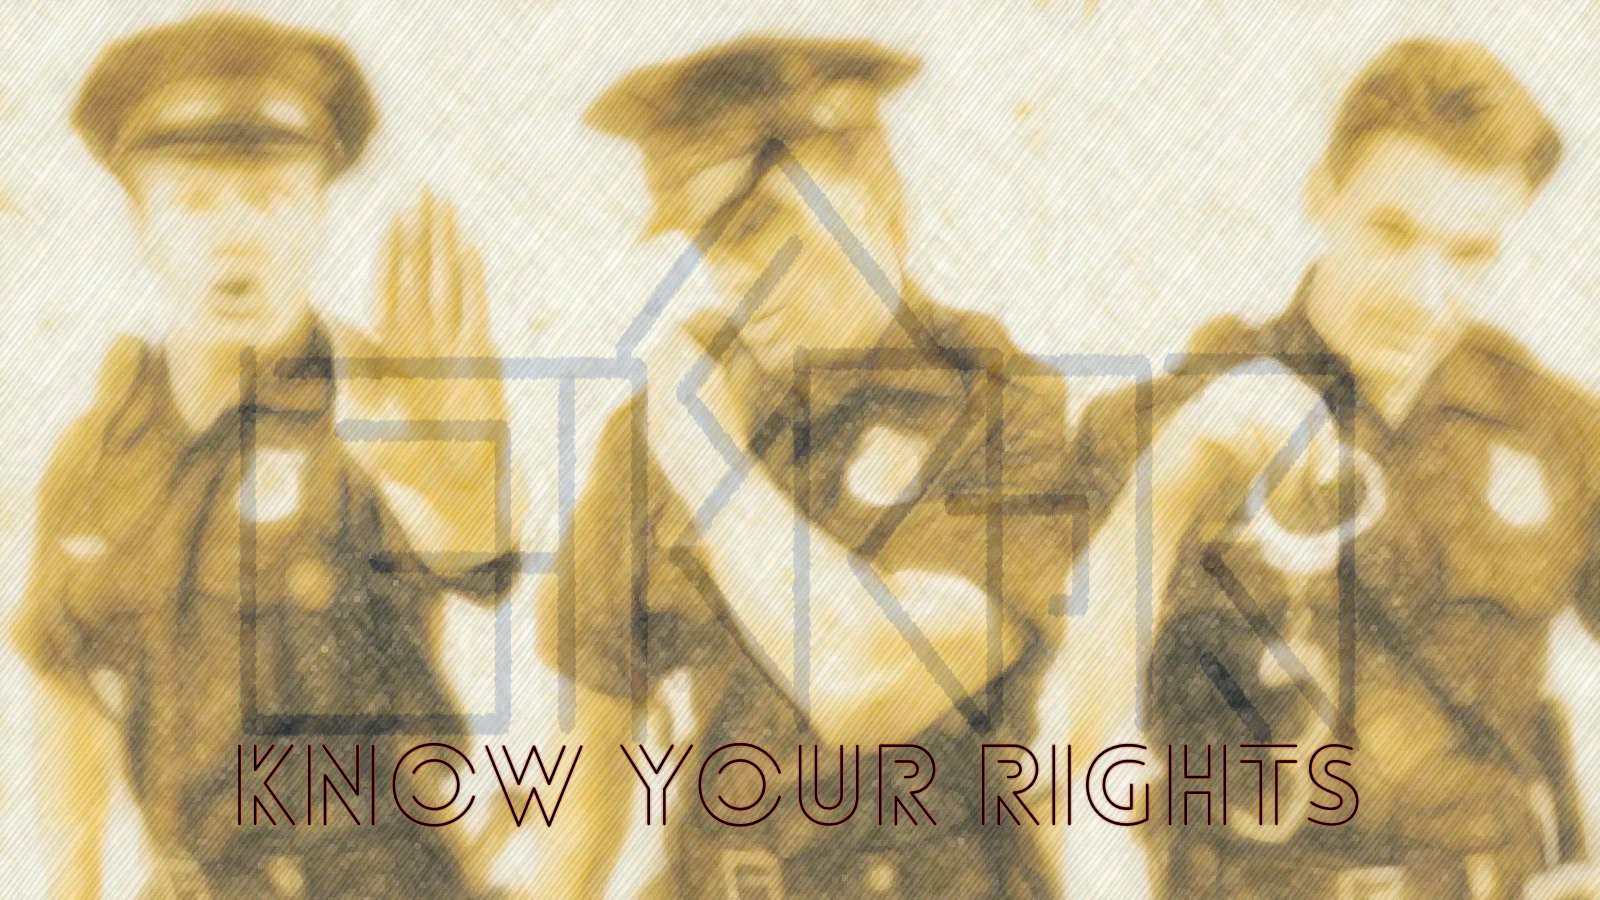 Bangladeshi community living in USA - Know Your Rights information